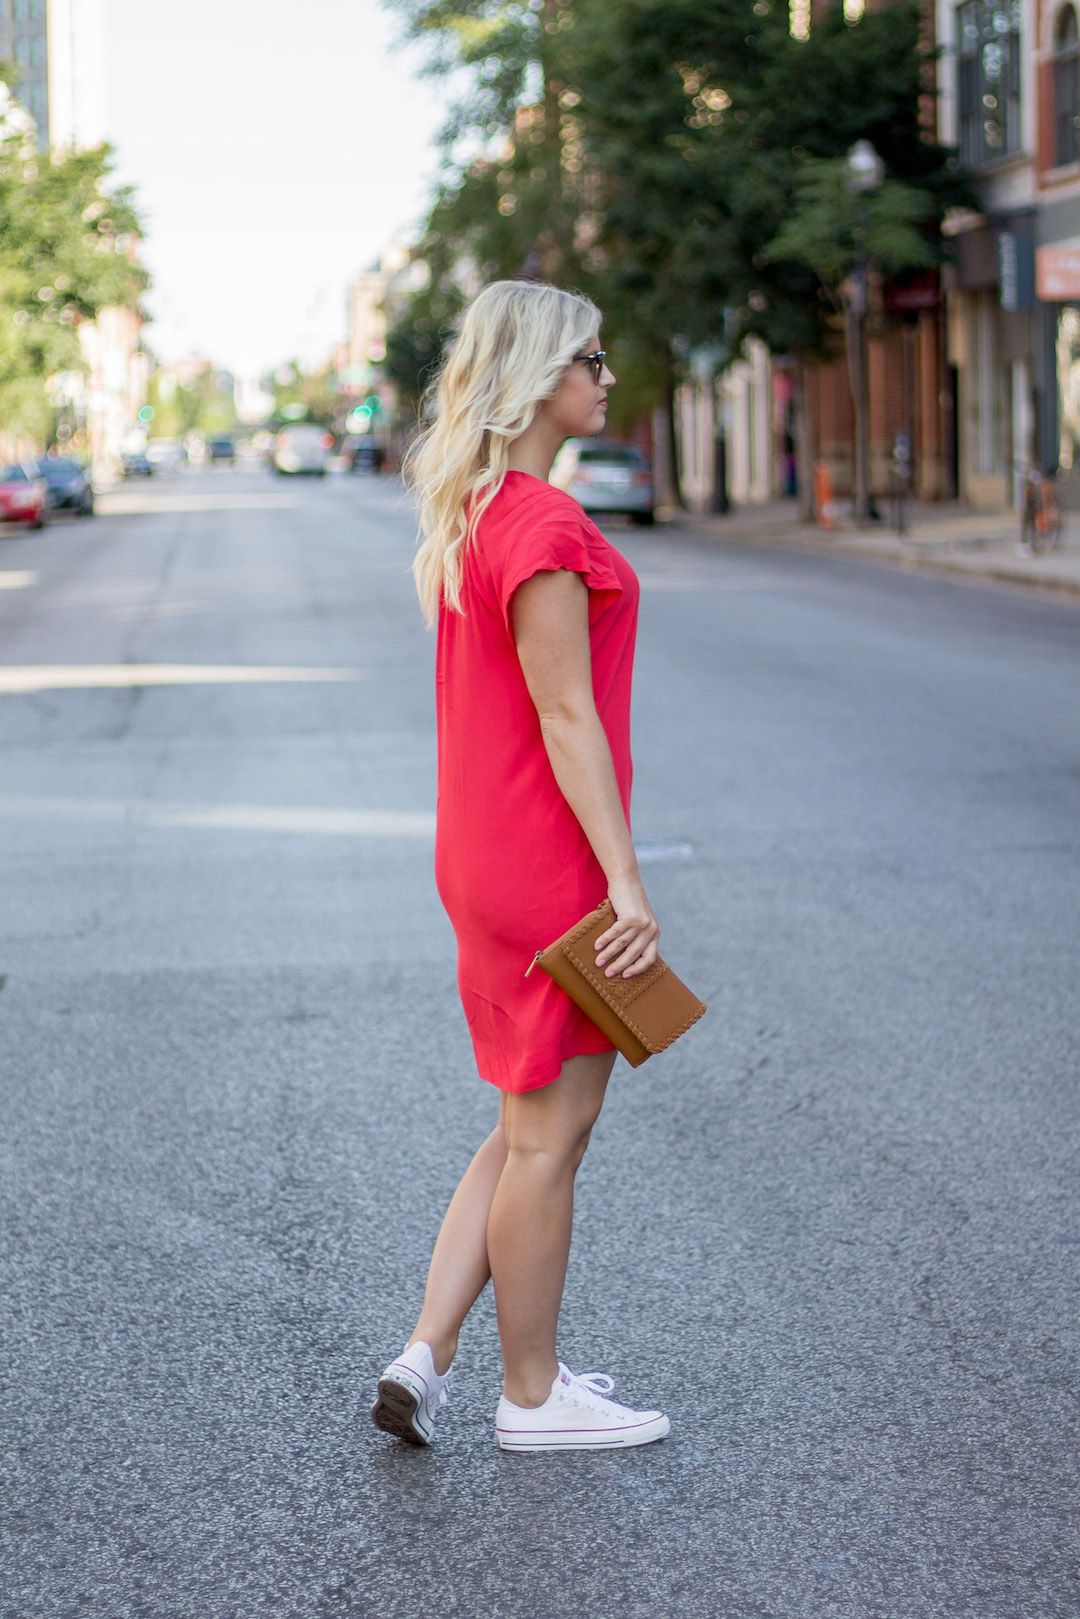 Red Dress Sneakers Blonde And Bailey Dress With Sneakers Red Dress Outfit Dress With Converse [ 1619 x 1080 Pixel ]